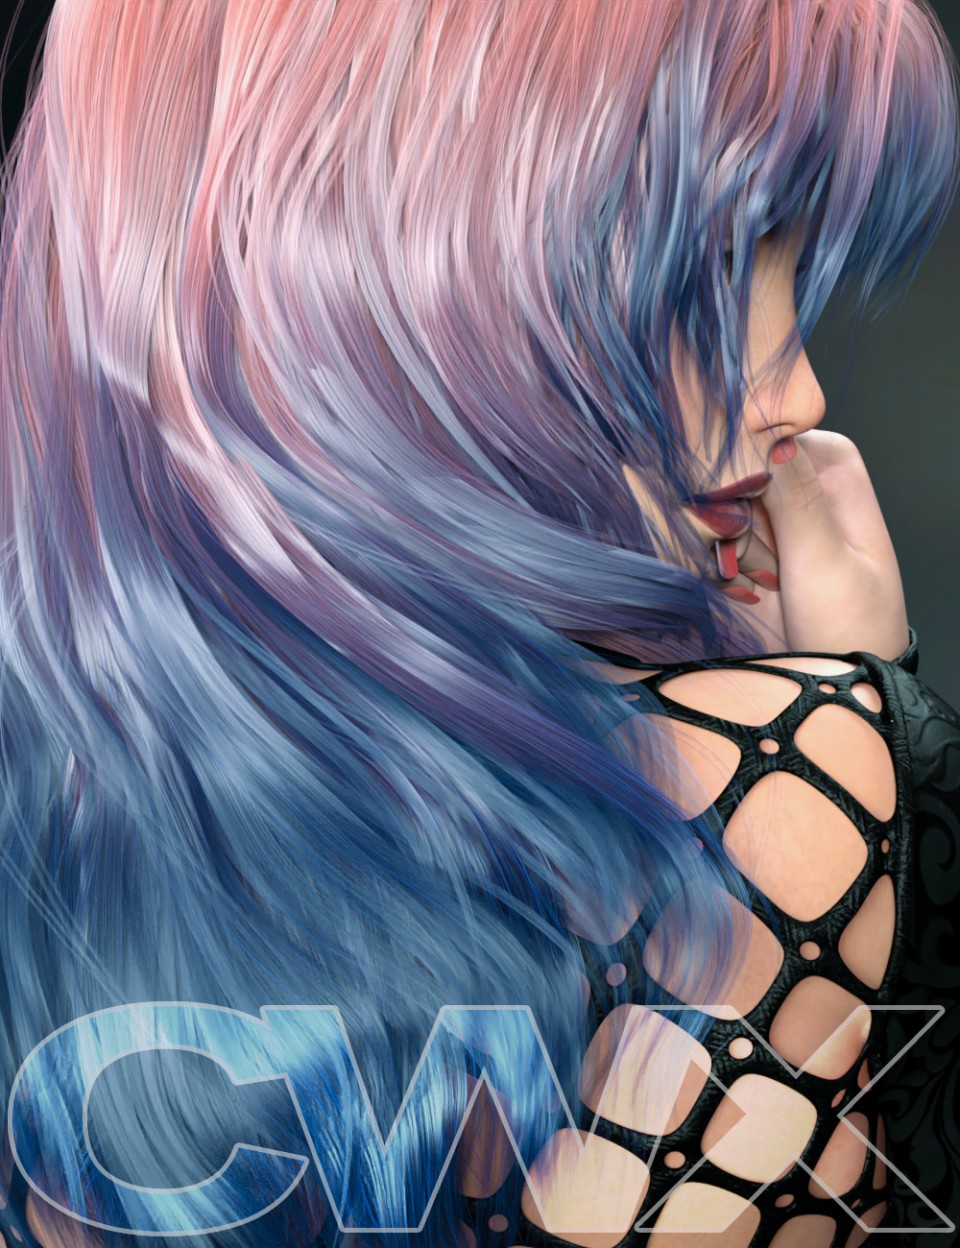 ColorWerks Extreme: Hair Texture Blending for Iray and dForce Hair_DAZ3D下载站